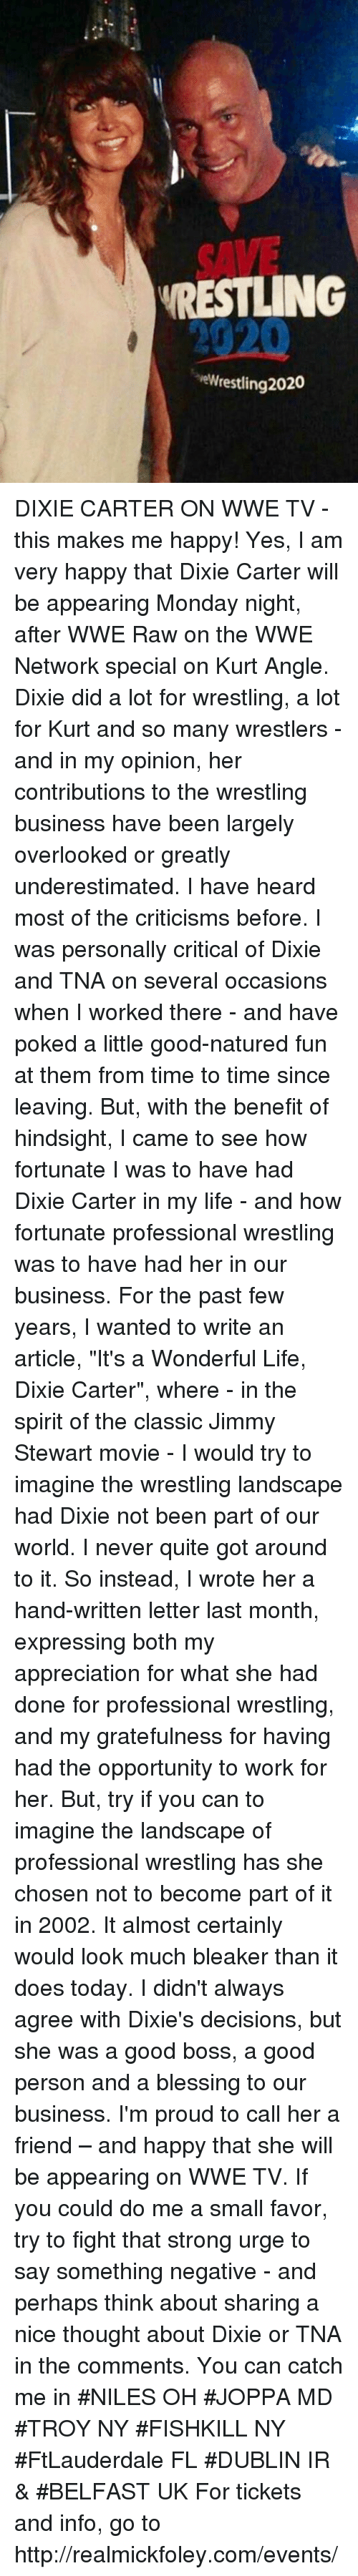 "past-few-years: SAVE  RESTLING  2020  eWrestling 2020 DIXIE CARTER ON WWE TV - this makes me happy!  Yes, I am very happy that Dixie Carter will be appearing Monday night, after WWE Raw on the WWE Network special on Kurt Angle. Dixie did a lot for wrestling, a lot for Kurt and so many wrestlers - and in my opinion, her contributions to the wrestling business have been largely overlooked or greatly underestimated.   I have heard  most of the criticisms before. I was personally critical of Dixie and TNA on several occasions when I worked there - and have poked a little good-natured fun at them from time to time since leaving.  But, with the benefit of hindsight, I came to see how fortunate I was to have had Dixie Carter in my life -  and how fortunate professional wrestling was to have had her in our business.    For the past few years, I  wanted to write an article, ""It's a Wonderful Life, Dixie Carter"",  where - in the spirit of the classic Jimmy Stewart movie - I would try to imagine the wrestling landscape had Dixie not been part of our world.  I never quite got around to it.  So instead, I wrote her a hand-written letter last month,  expressing both my appreciation for what she had done for professional wrestling, and my gratefulness for having had the opportunity to work for her.  But, try if you can to imagine the landscape of professional wrestling has she chosen not to become part of it in 2002. It almost certainly  would look much bleaker than it does today. I didn't always agree with Dixie's decisions, but she was a good boss, a good person and a blessing to our business. I'm  proud to call her a friend – and happy that she will be appearing on WWE TV.  If you could do me a small favor, try to fight that strong urge to say something negative - and perhaps think about sharing a nice thought about Dixie or TNA in the comments.   You can catch me in #NILES OH #JOPPA MD #TROY NY #FISHKILL NY #FtLauderdale FL #DUBLIN IR & #BELFAST UK For tickets and info, go to http://realmickfoley.com/events/"